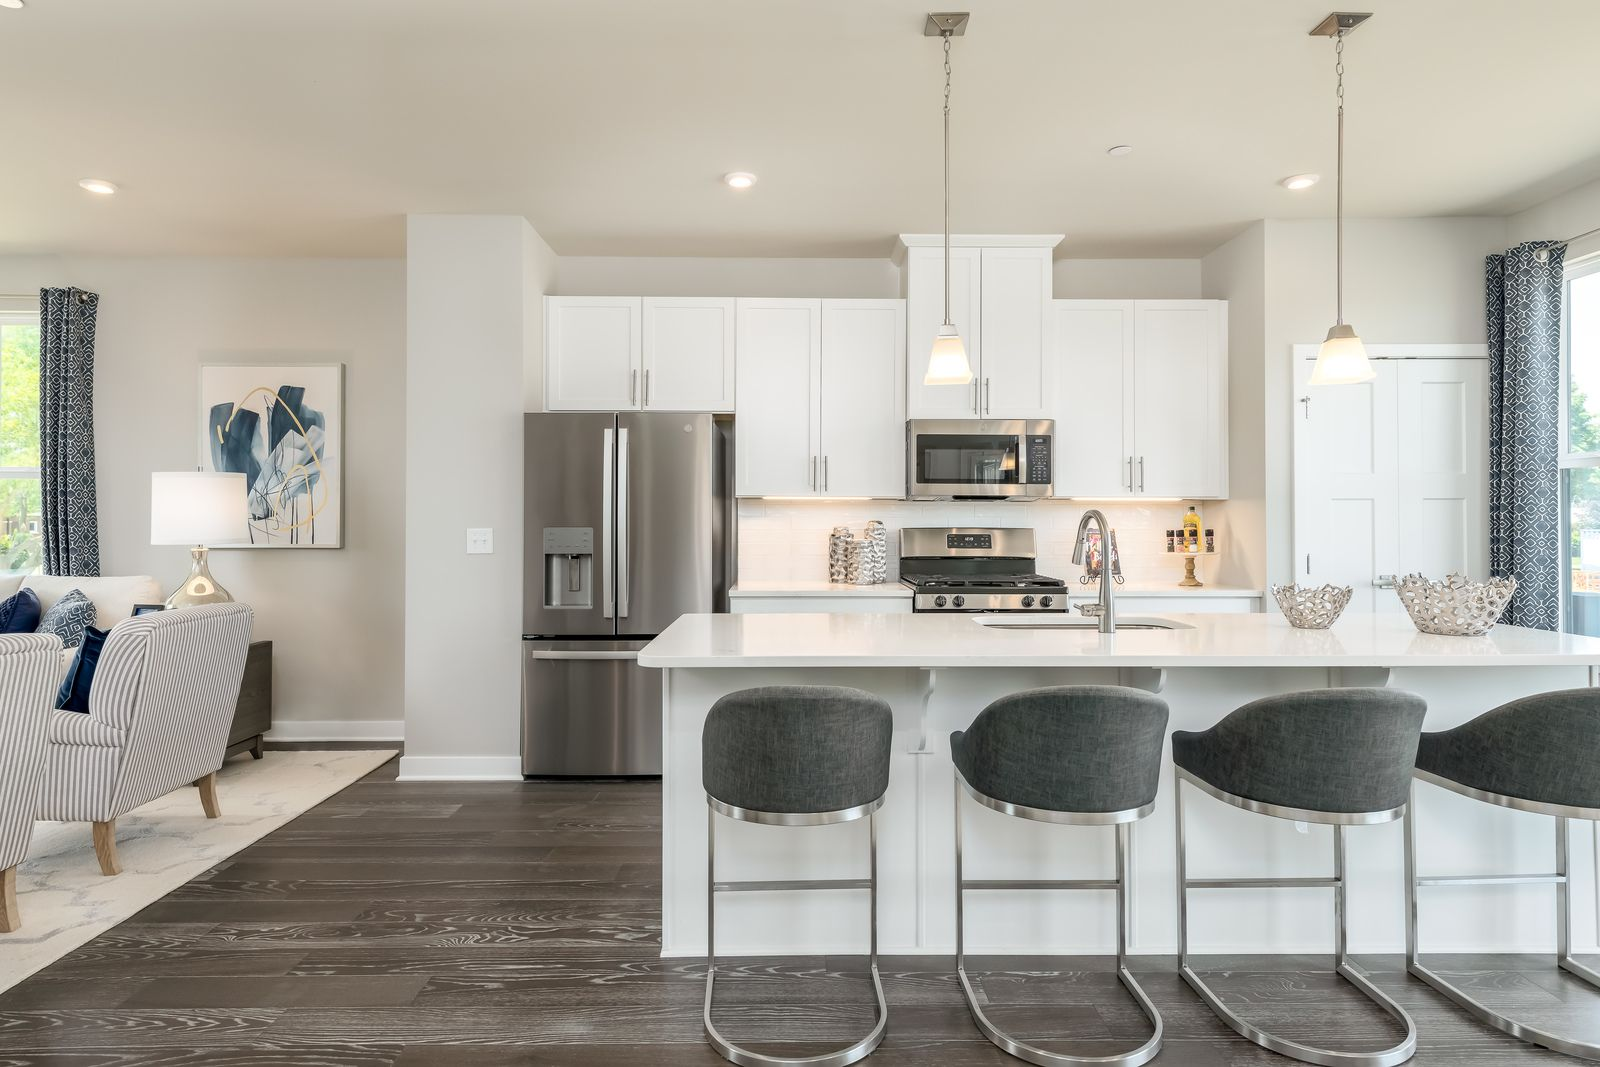 Kitchen featured in the Mendelssohn By Ryan Homes in Monmouth County, NJ